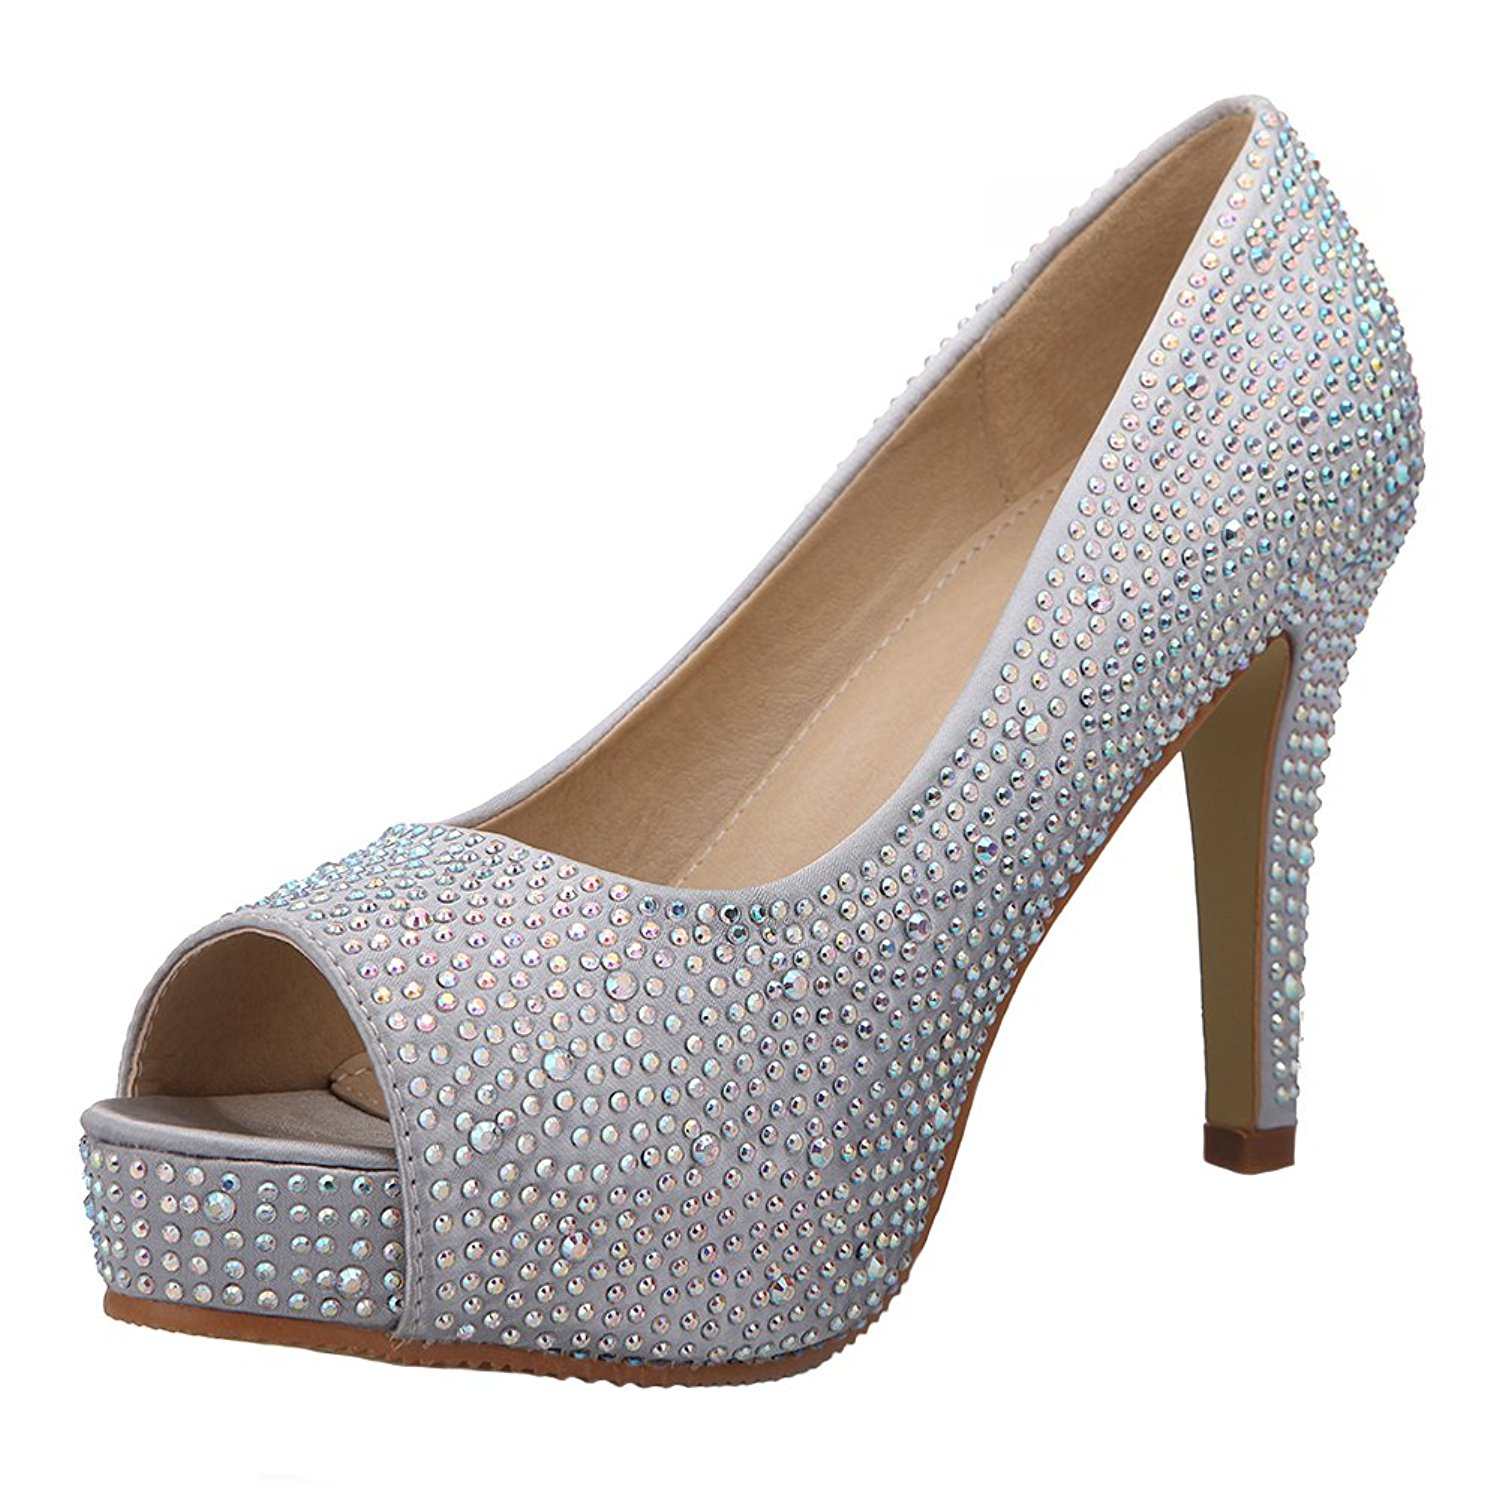 VELCANS Fashion Rhinestone Womens Platform High Heels Pumps,Bridal Shoes,Party and Wedding Sandals Shoes